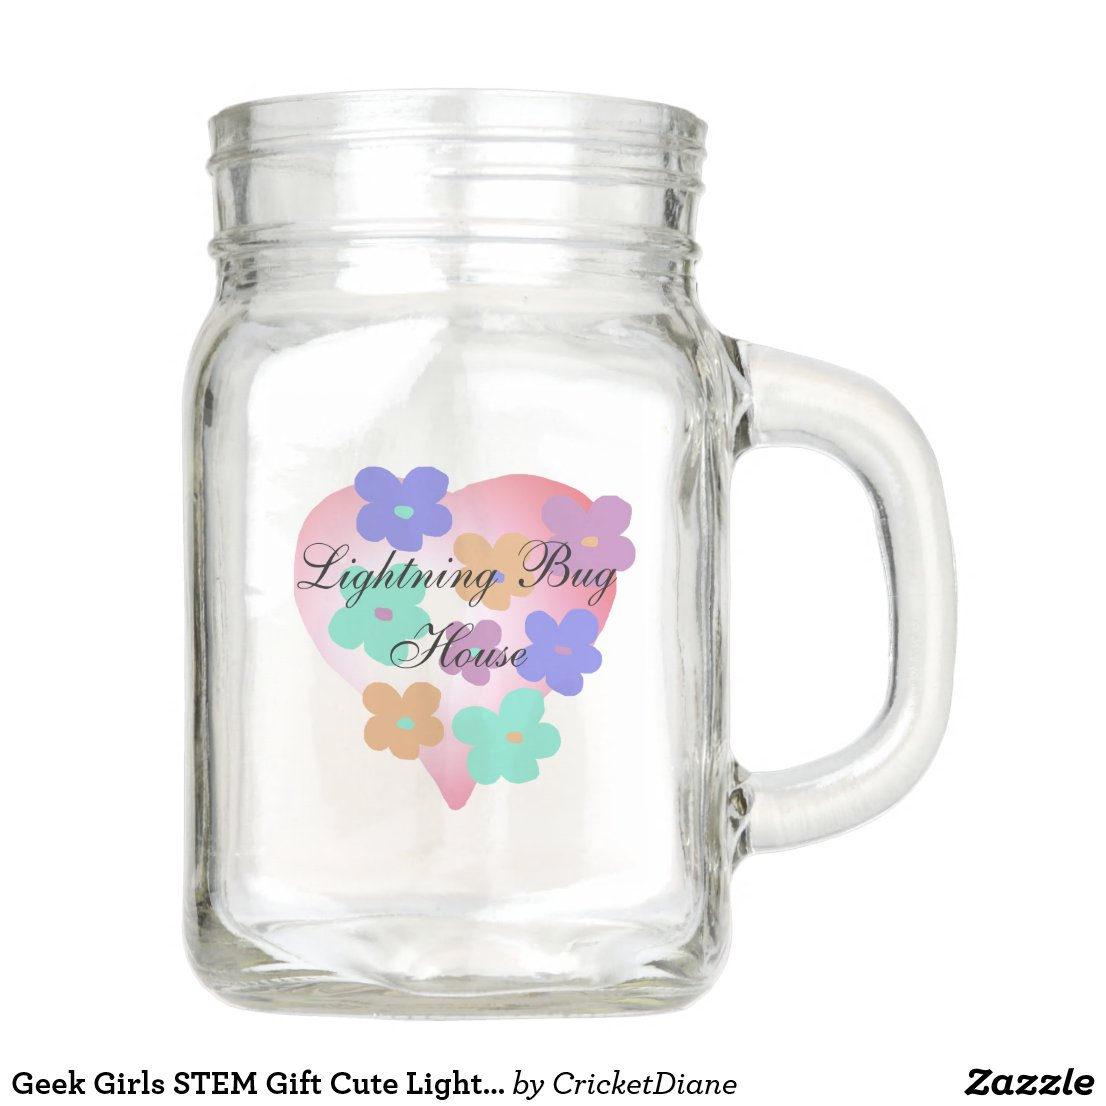 Geek Girls STEM Gift Cute Lightning Bug Jar